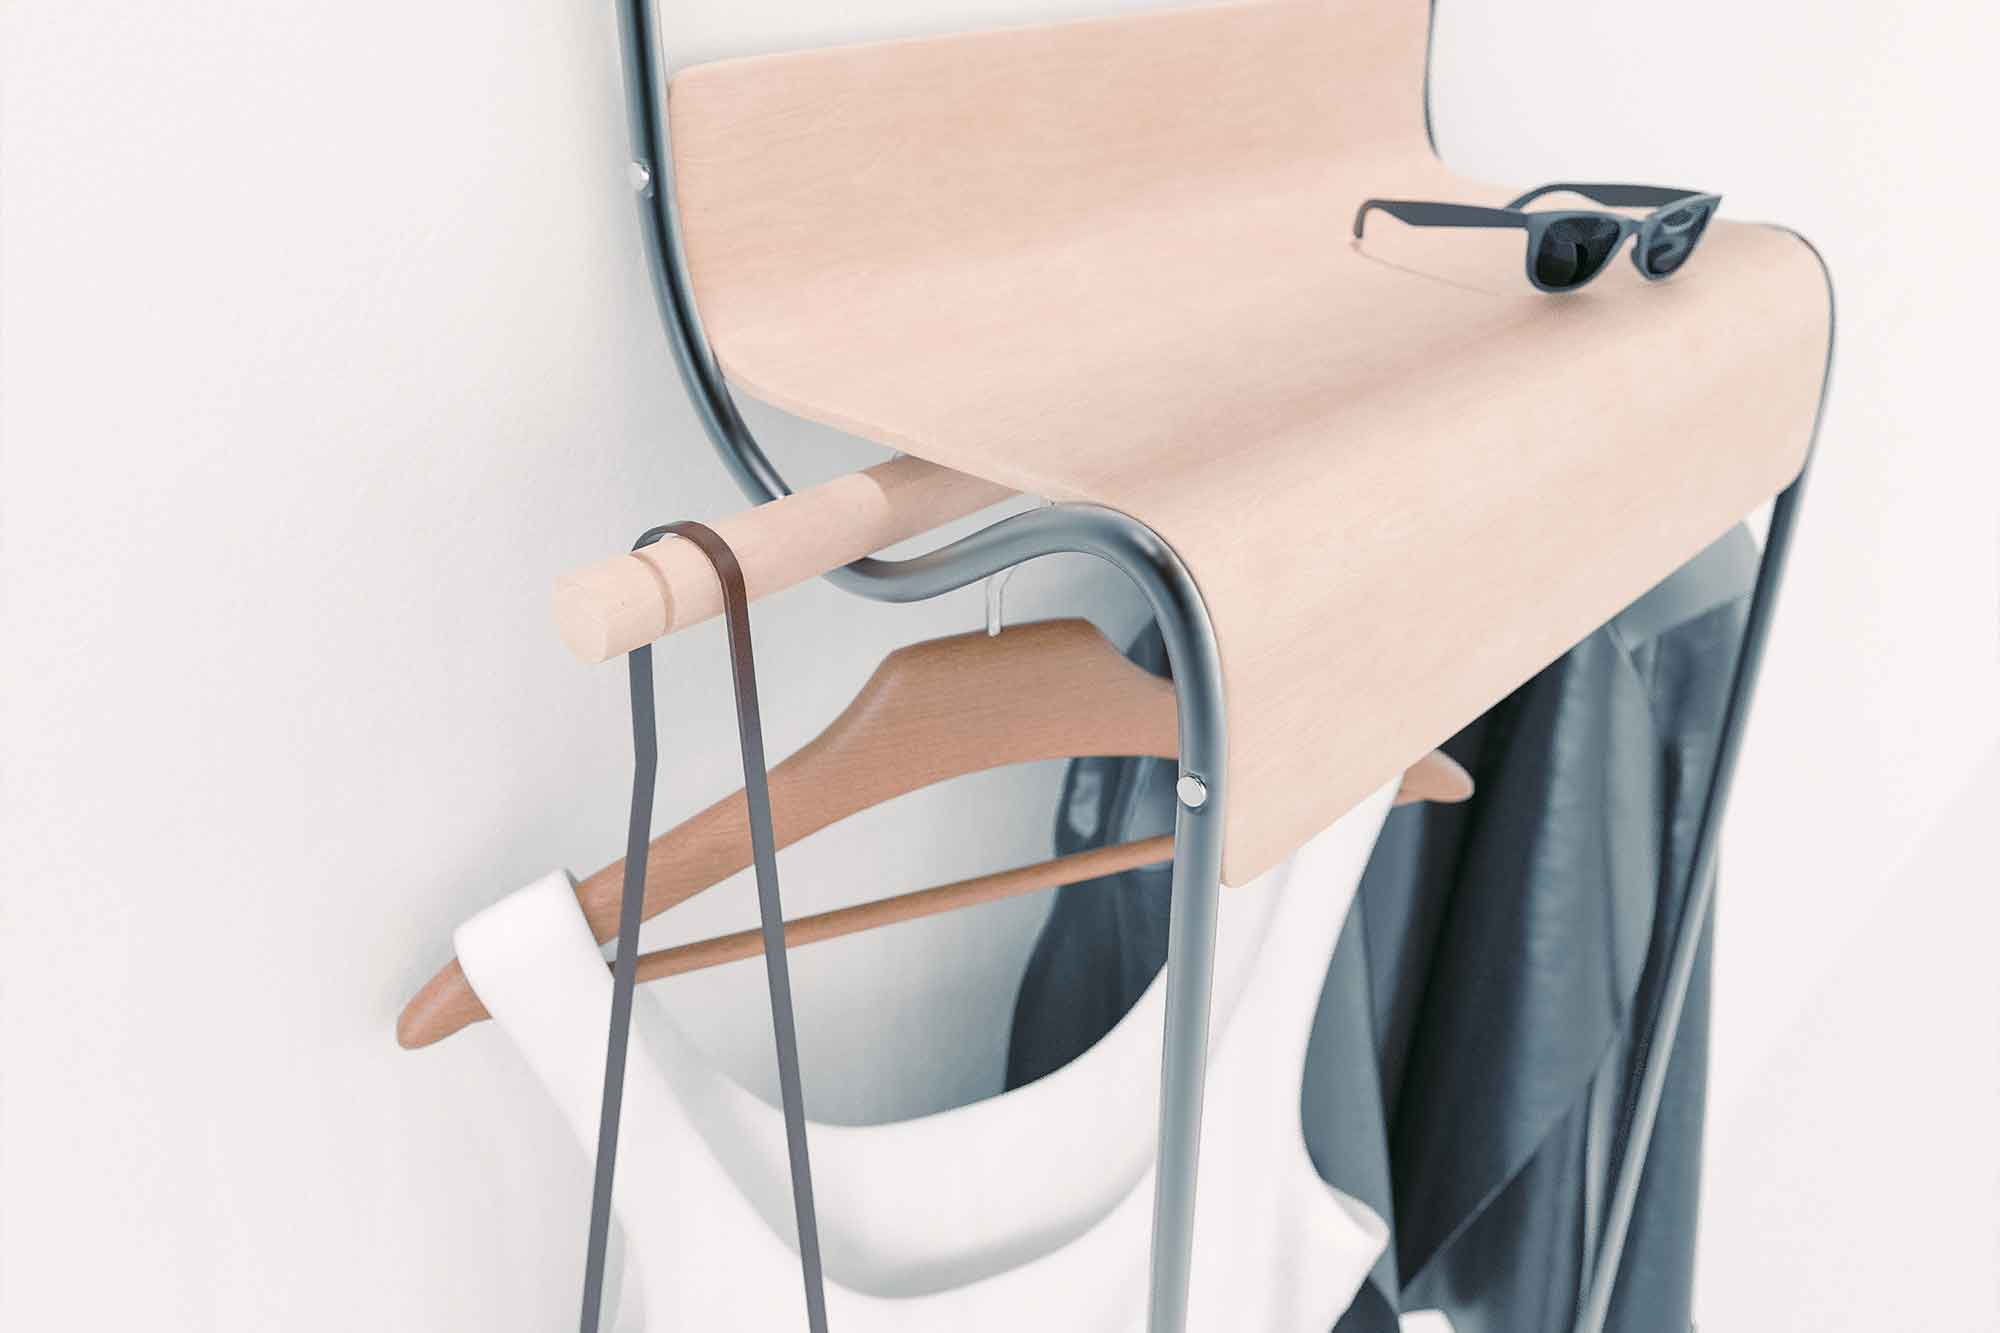 The hanger rod extends past the edges of the body, allowing the user to hang bags on the sides of the organizer.